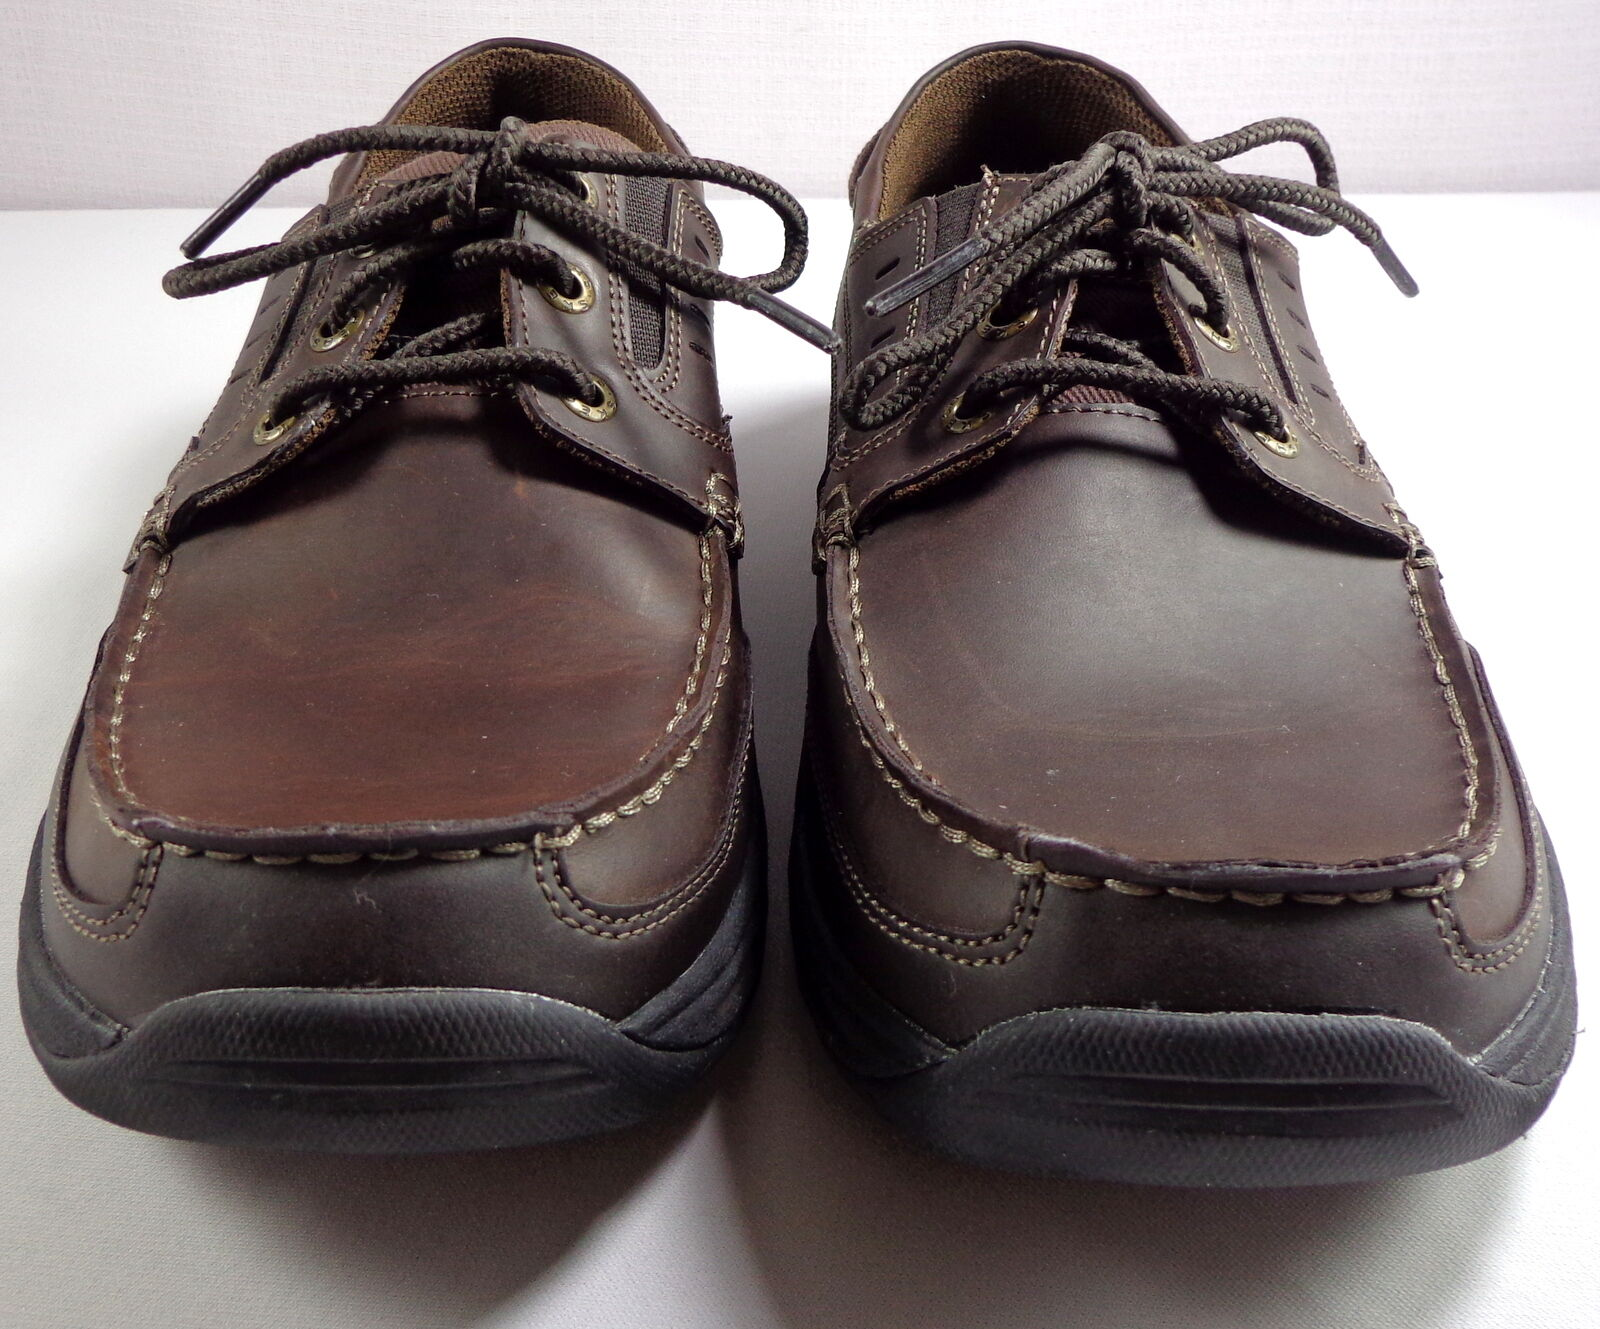 Skechers Mens shoes Relaxed Fit Memory Foam Brown Size 10